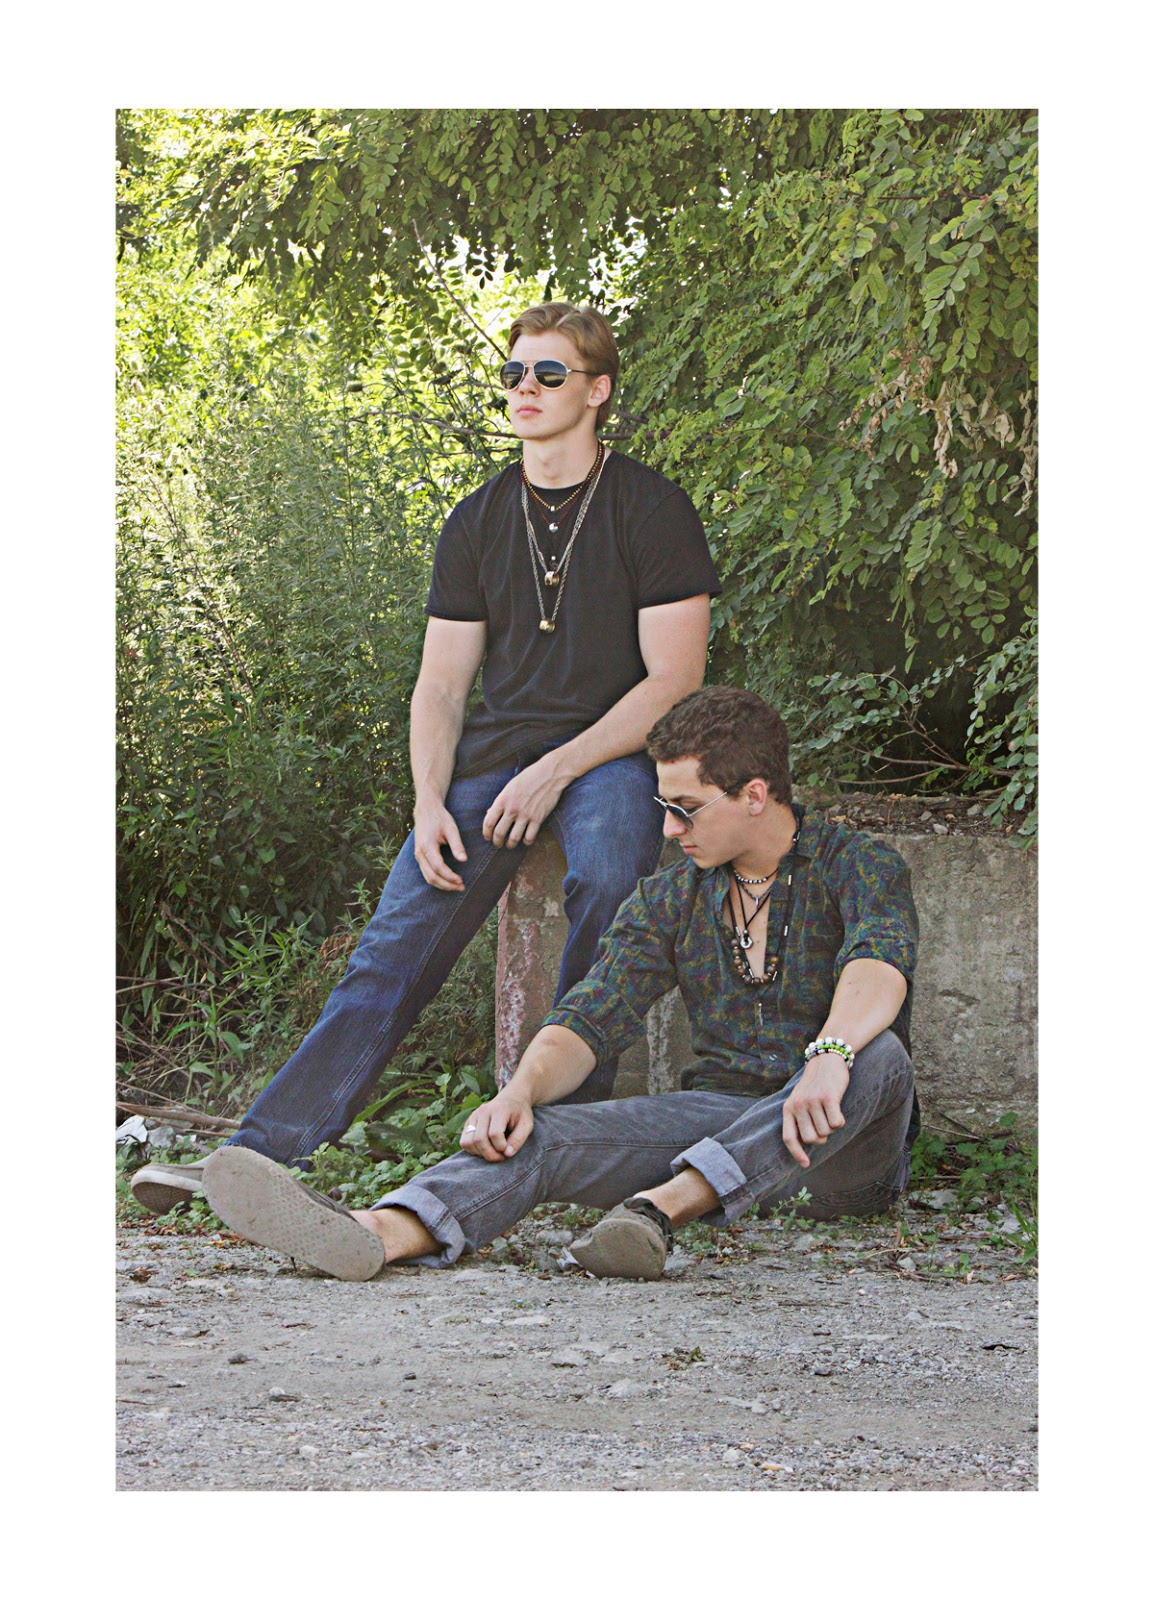 Model credit: Ryan Folliard and Bobby Cooling. Men's grunge style, Photo by Allison Beth Cooling